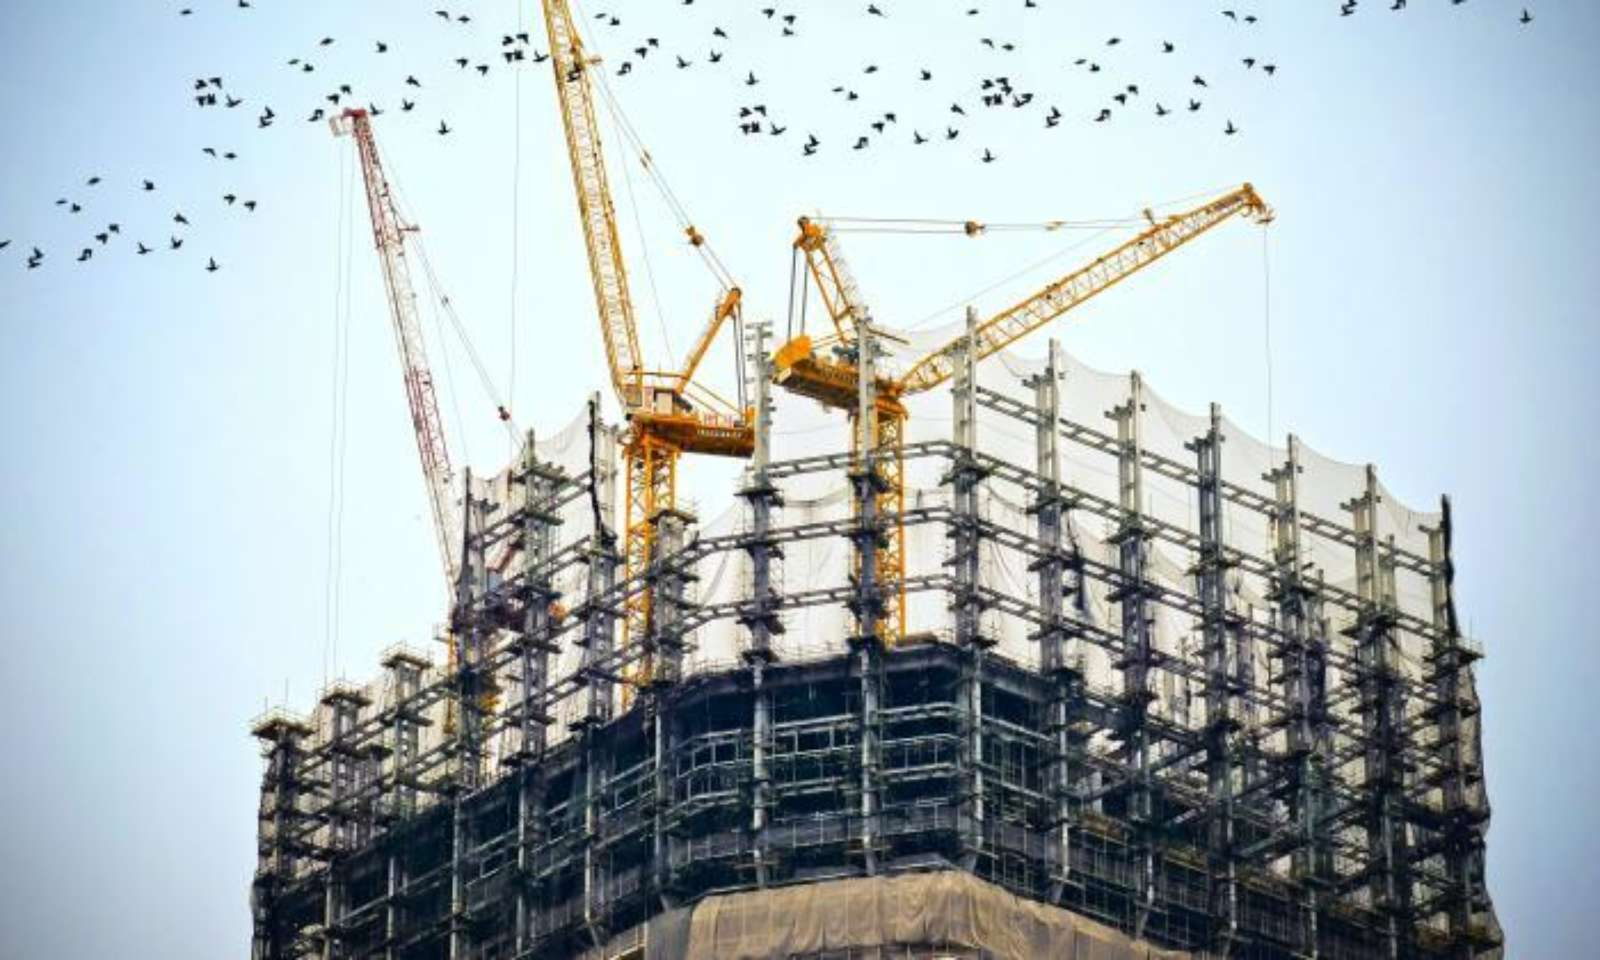 Cranes on the top of a high rise being built with flock of birds flying by